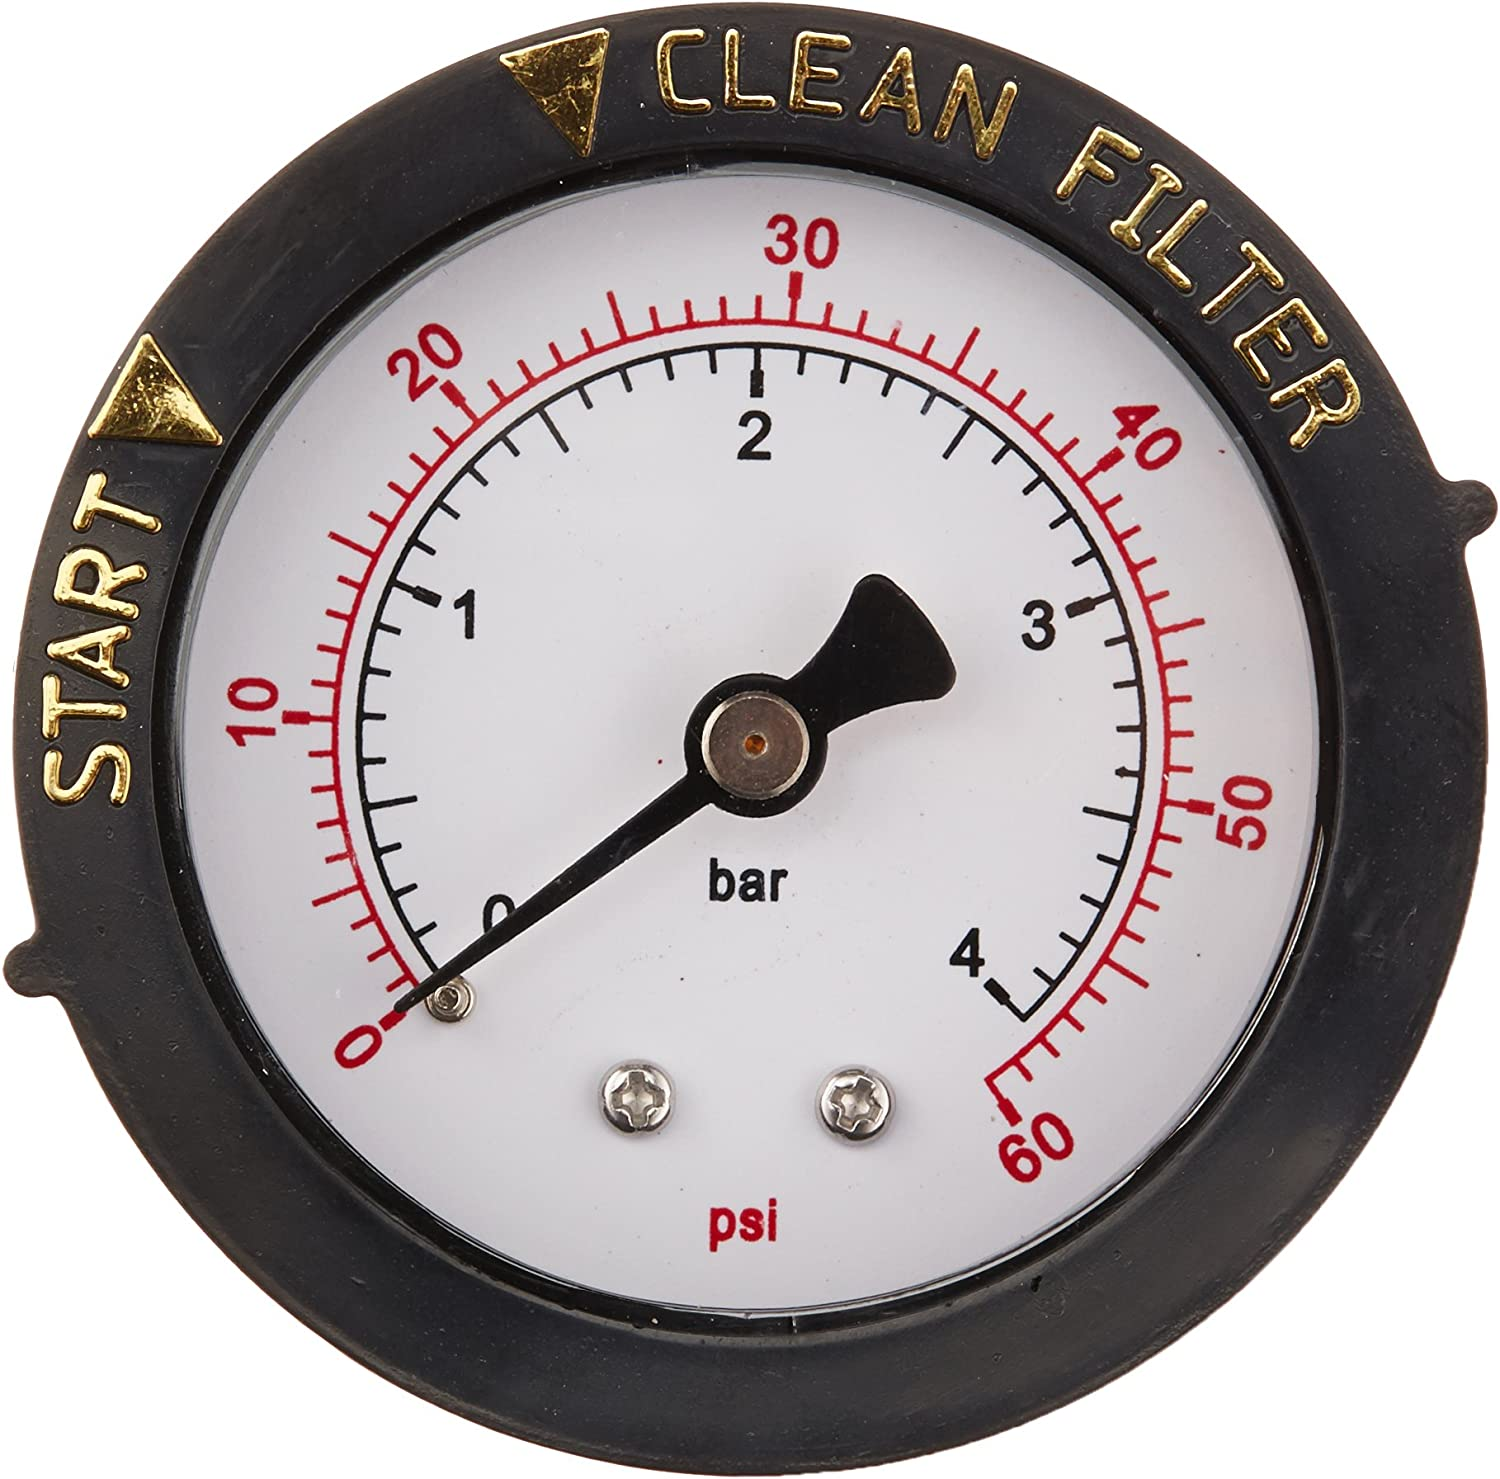 Pentair 190059 Rear Mount Pressure Gauge Replacement Pool/Spa Valve and Filter